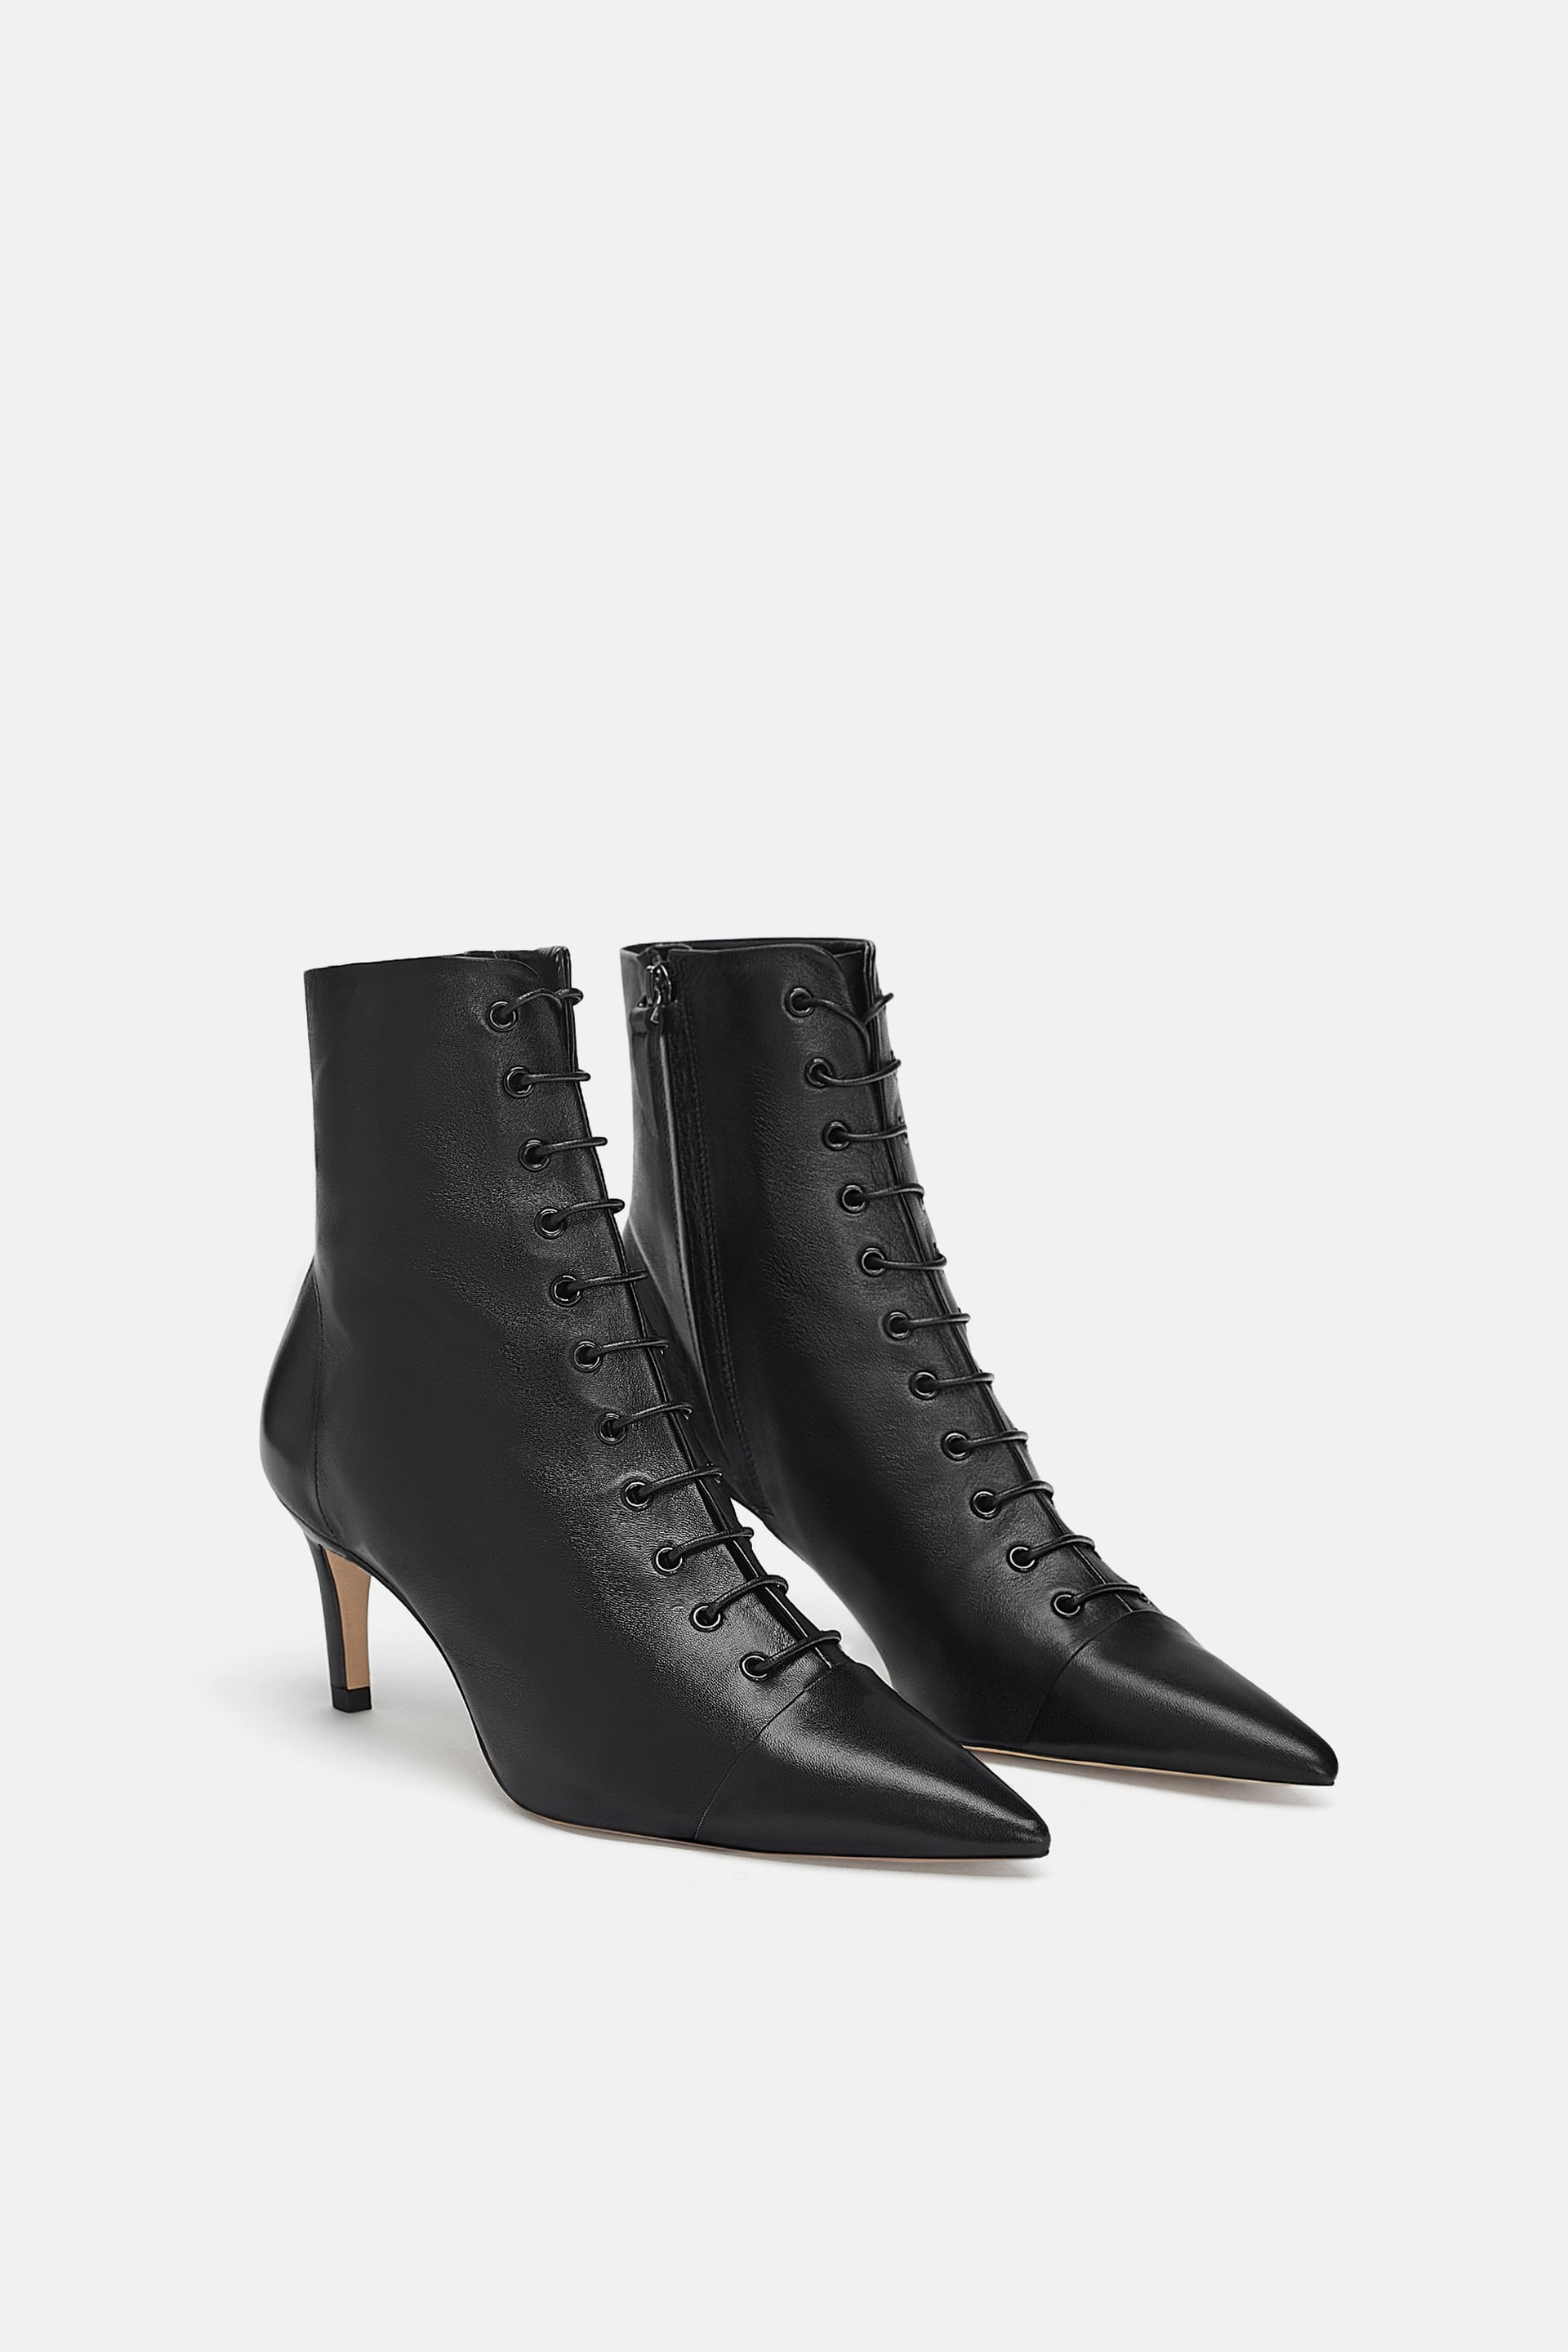 The Zara Sale Might Be Nearing Its End But Don T Fret Its New Collection Is Officially Here Refinery2 High Heel Boots Ankle Mid Heel Ankle Boots Zara Boots